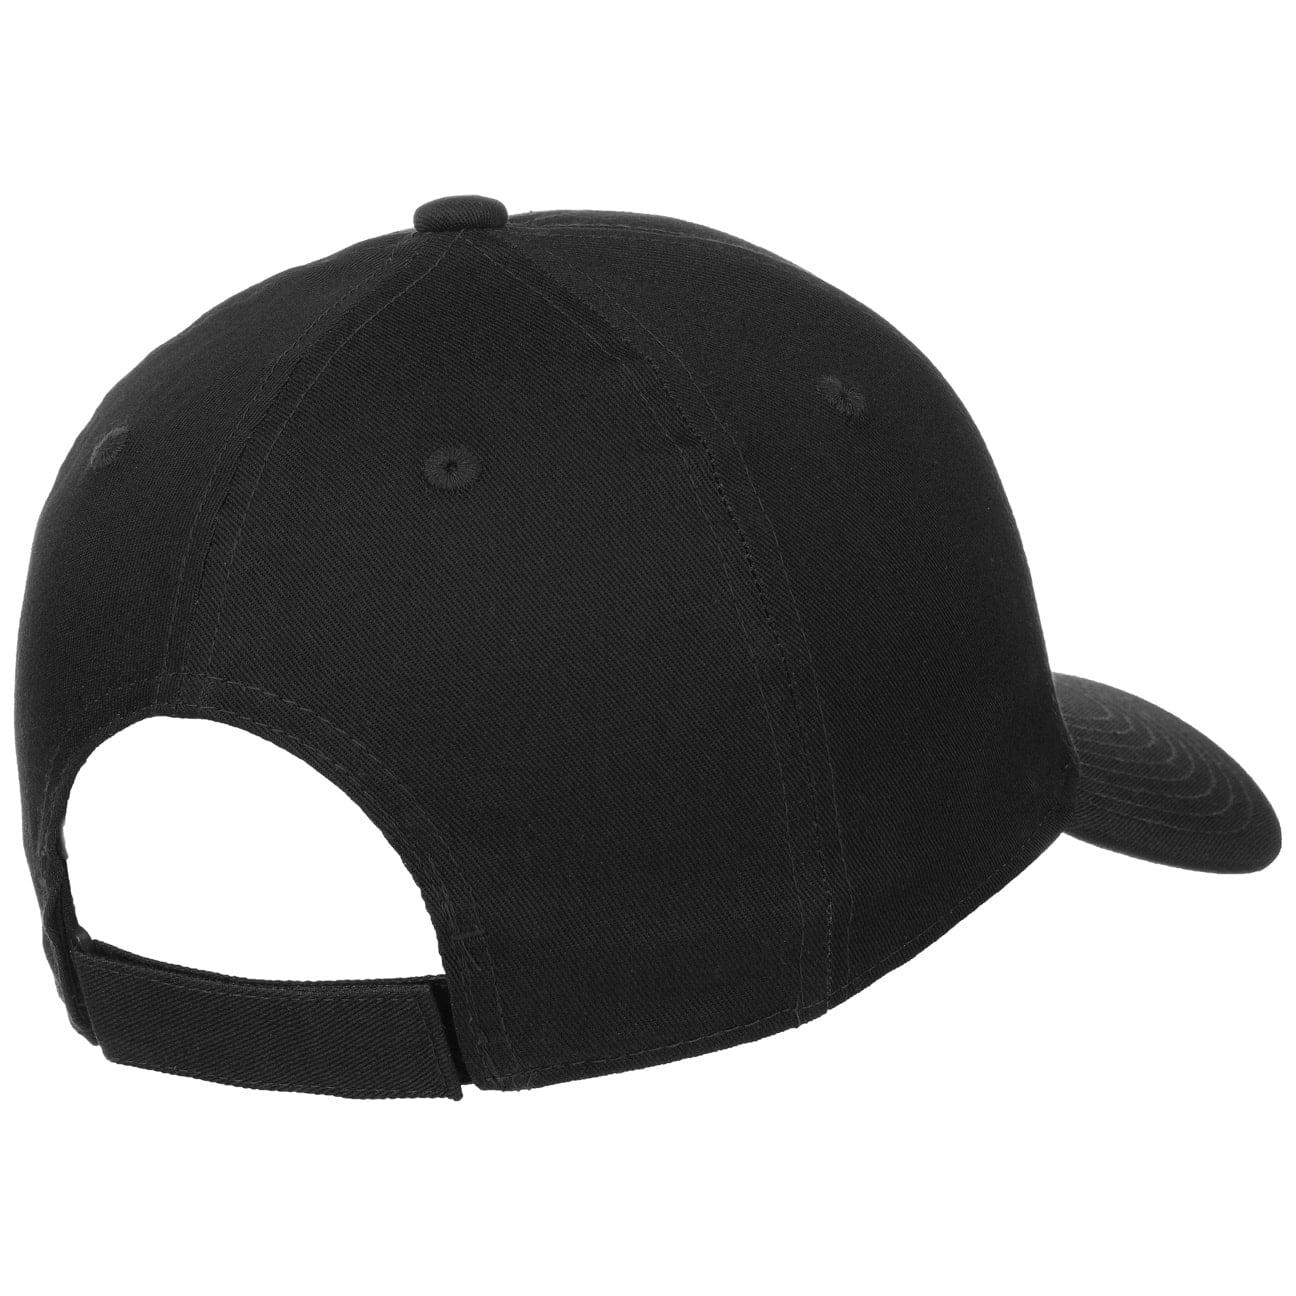 casquette classic perf baseball by adidas 14 95. Black Bedroom Furniture Sets. Home Design Ideas